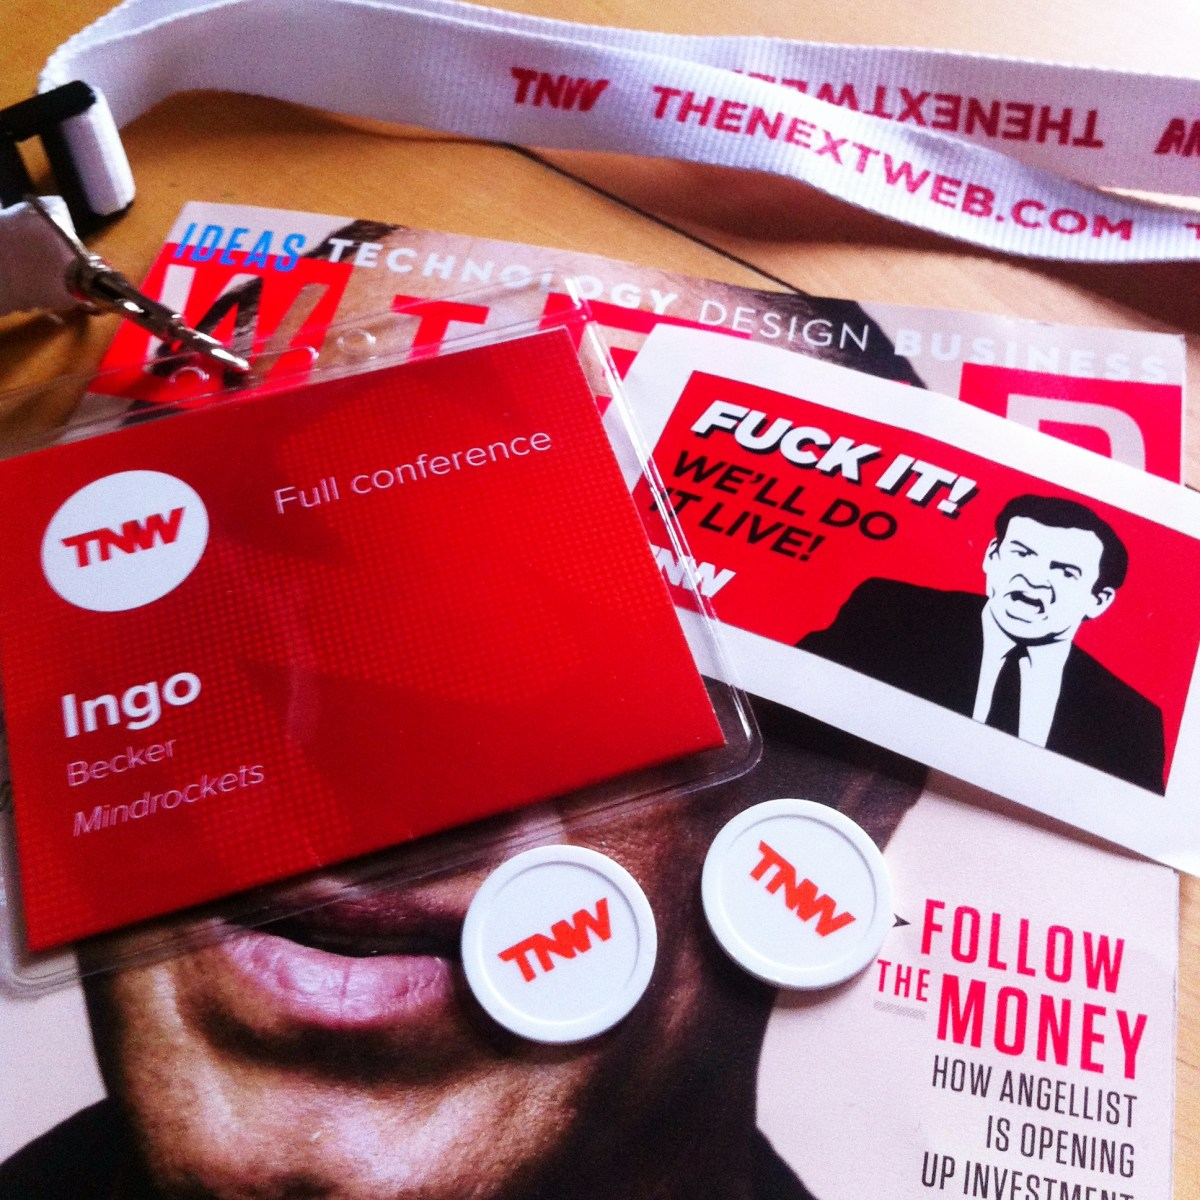 Storytelling, Content Marketing, Trend Scouting, Konferenz, TNW Conference, We do it live